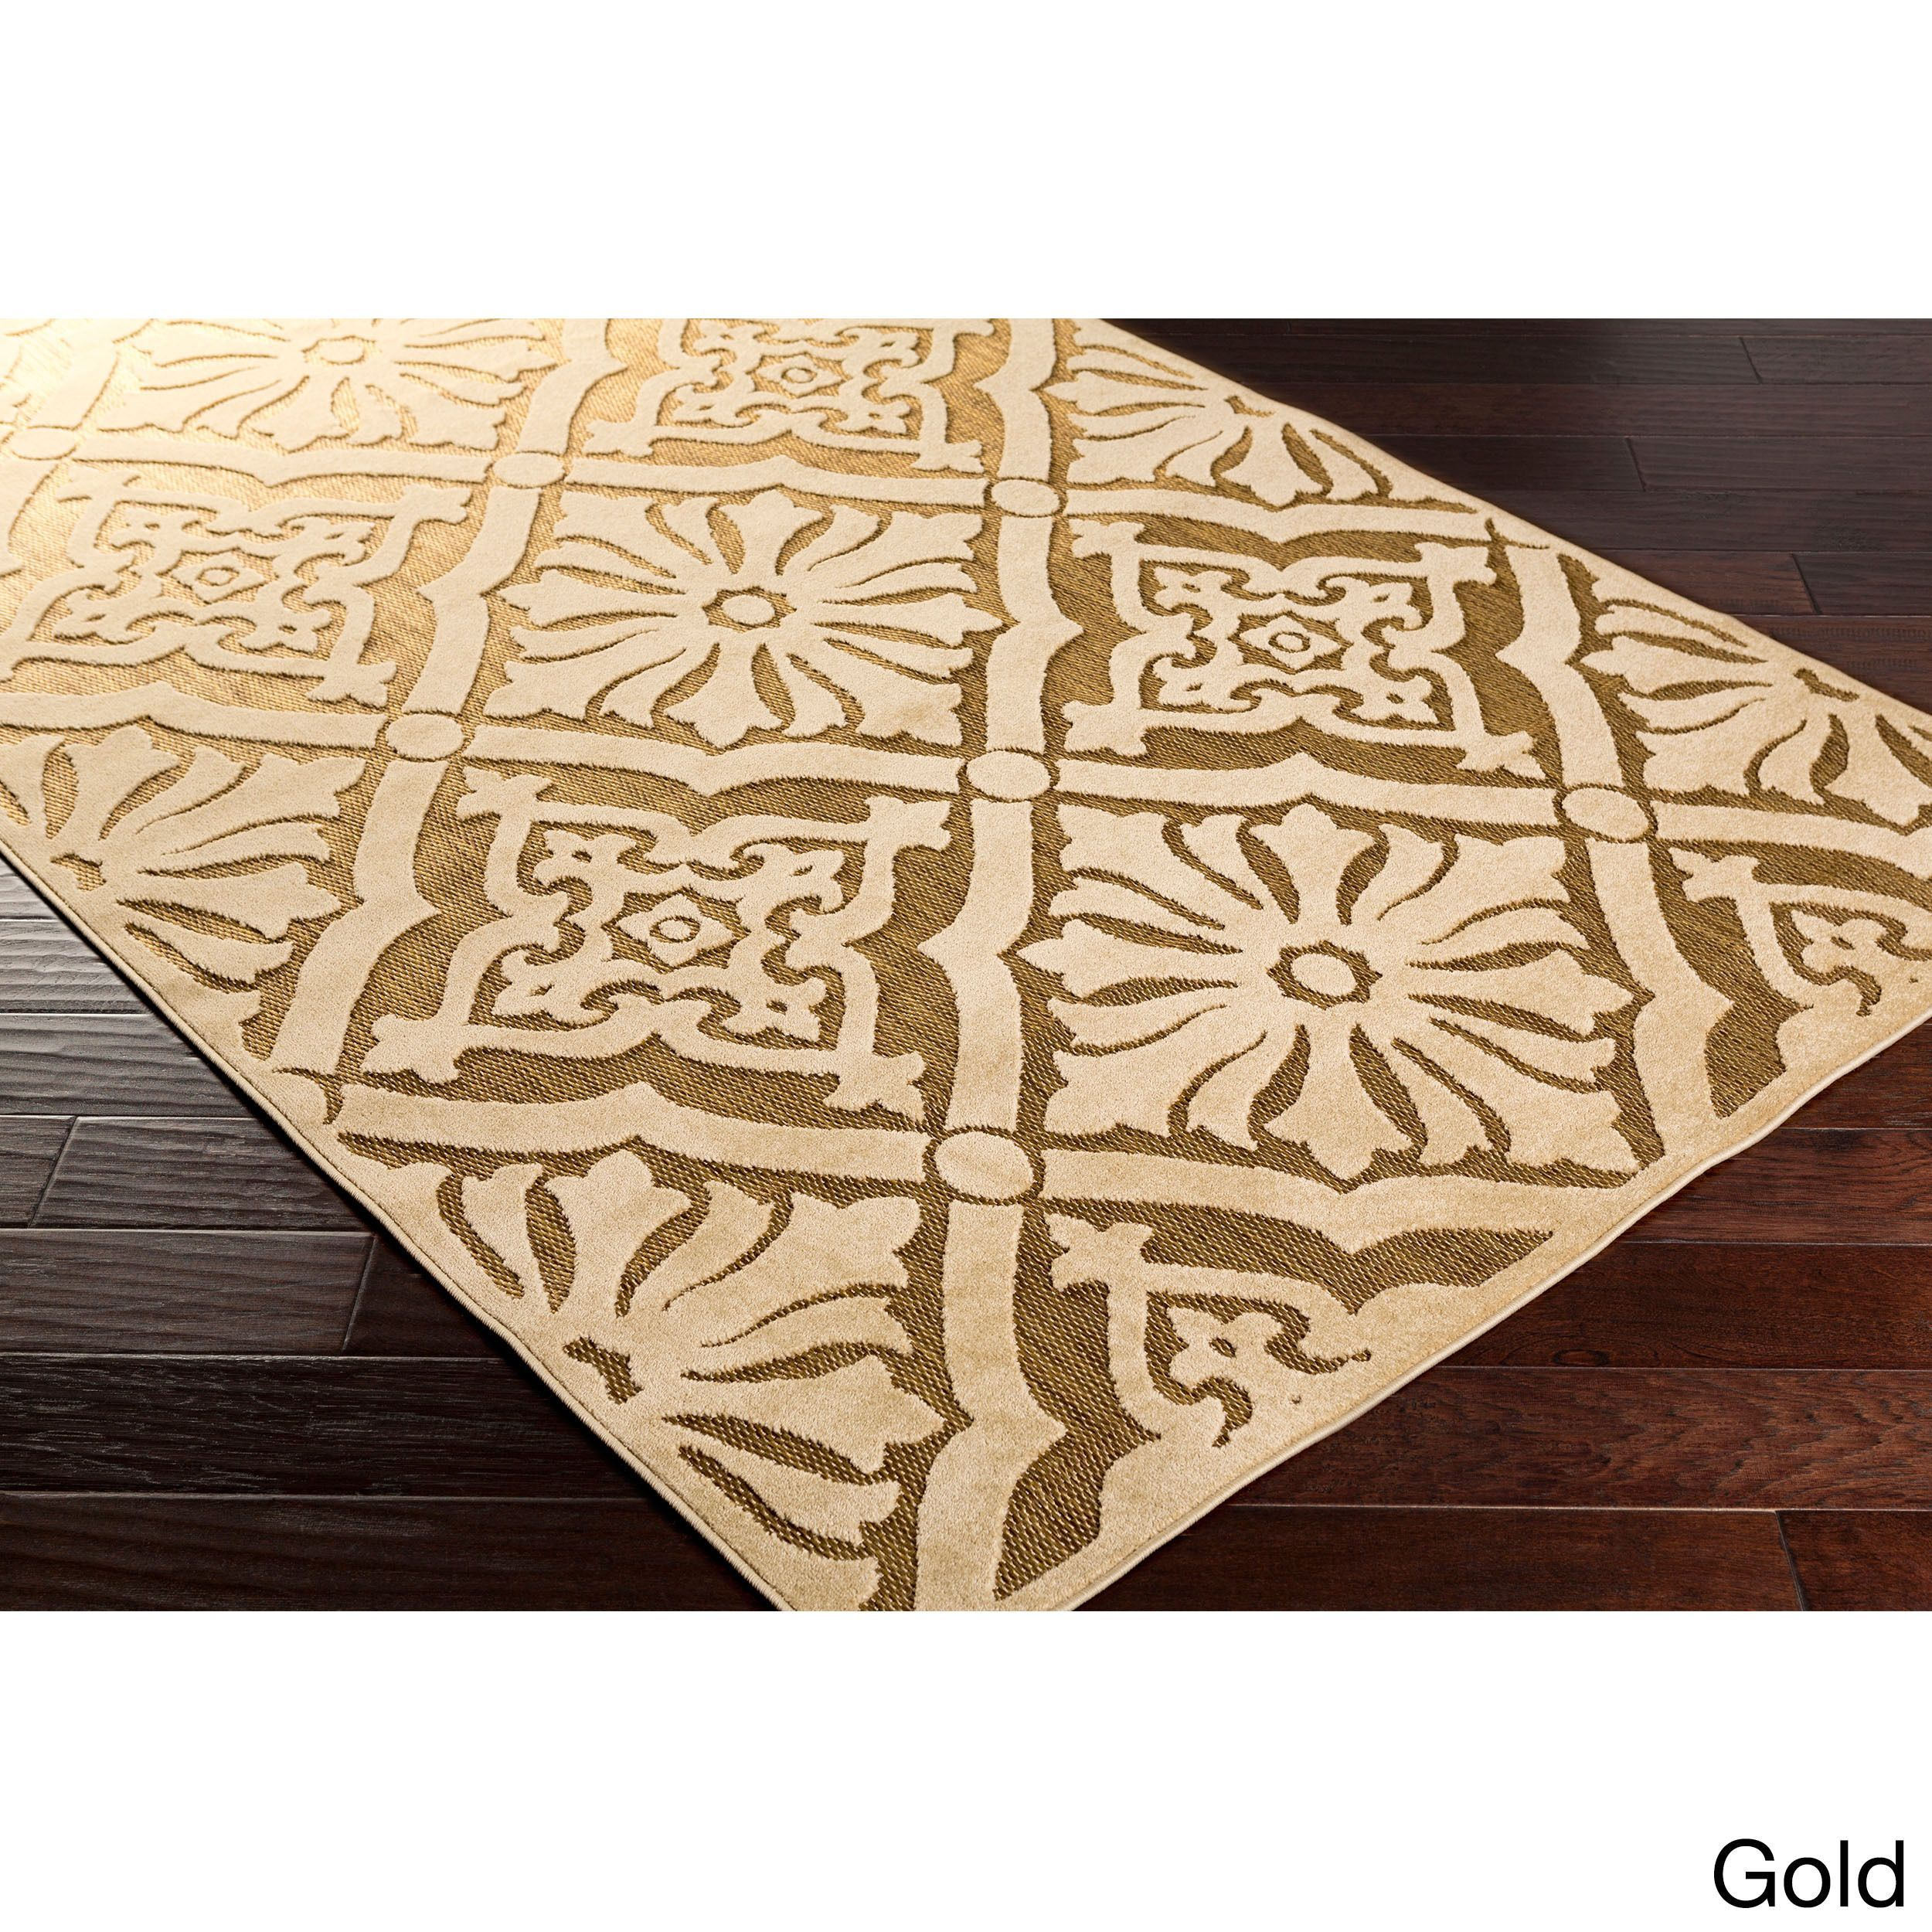 Livia Indoor Outdoor Olefin Rug 8 8 X 12 Gold 8 8 X 12 Gold